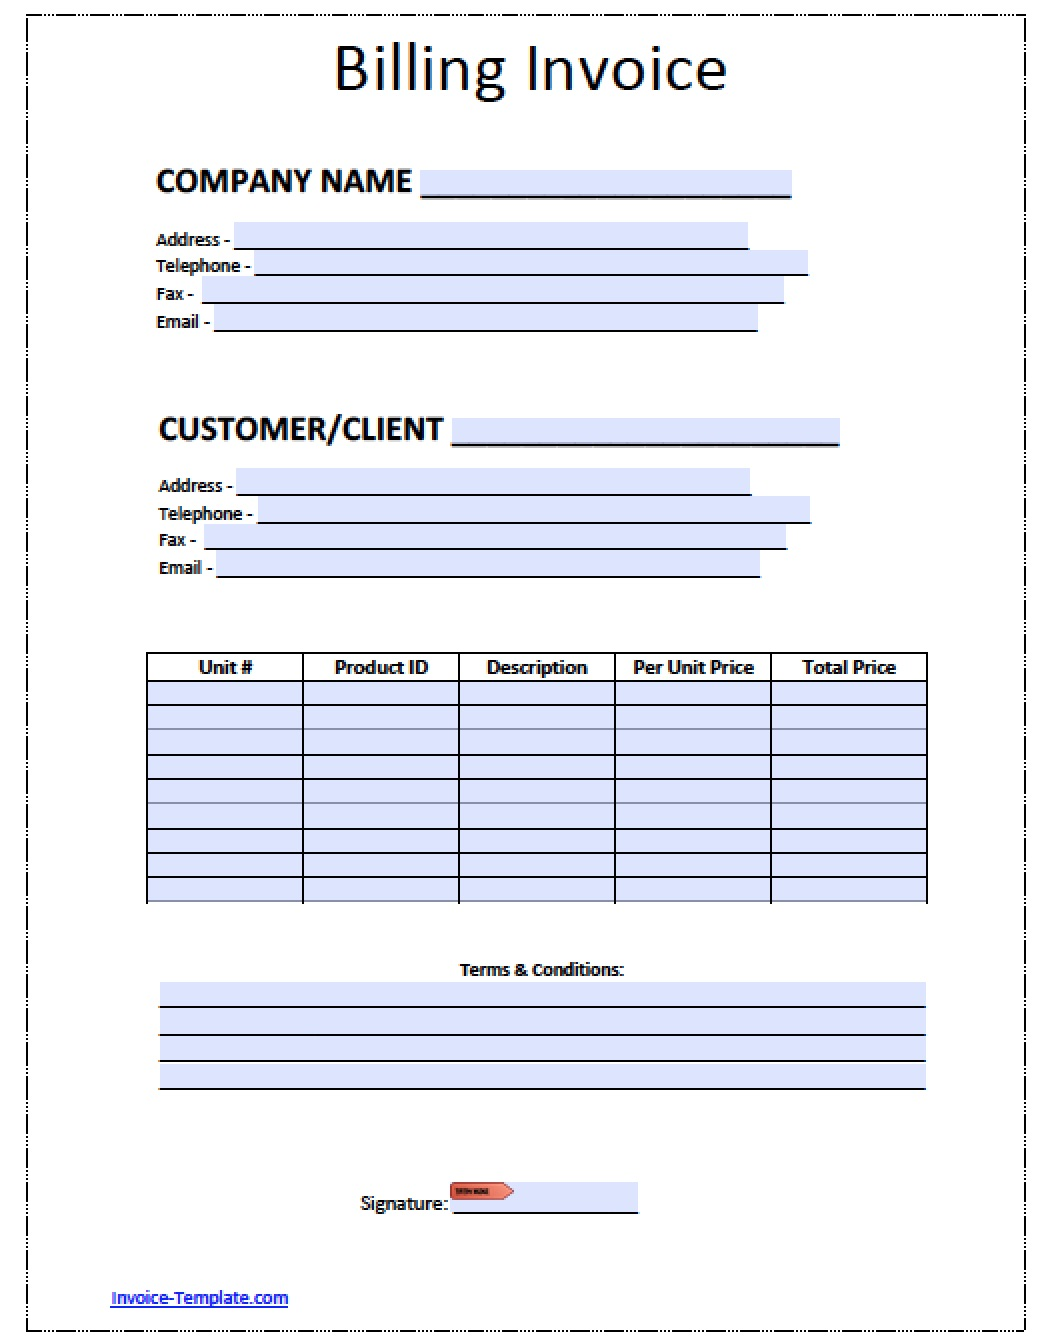 Free Billing Invoice Template Excel PDF Word Doc - Ms word invoice template mac